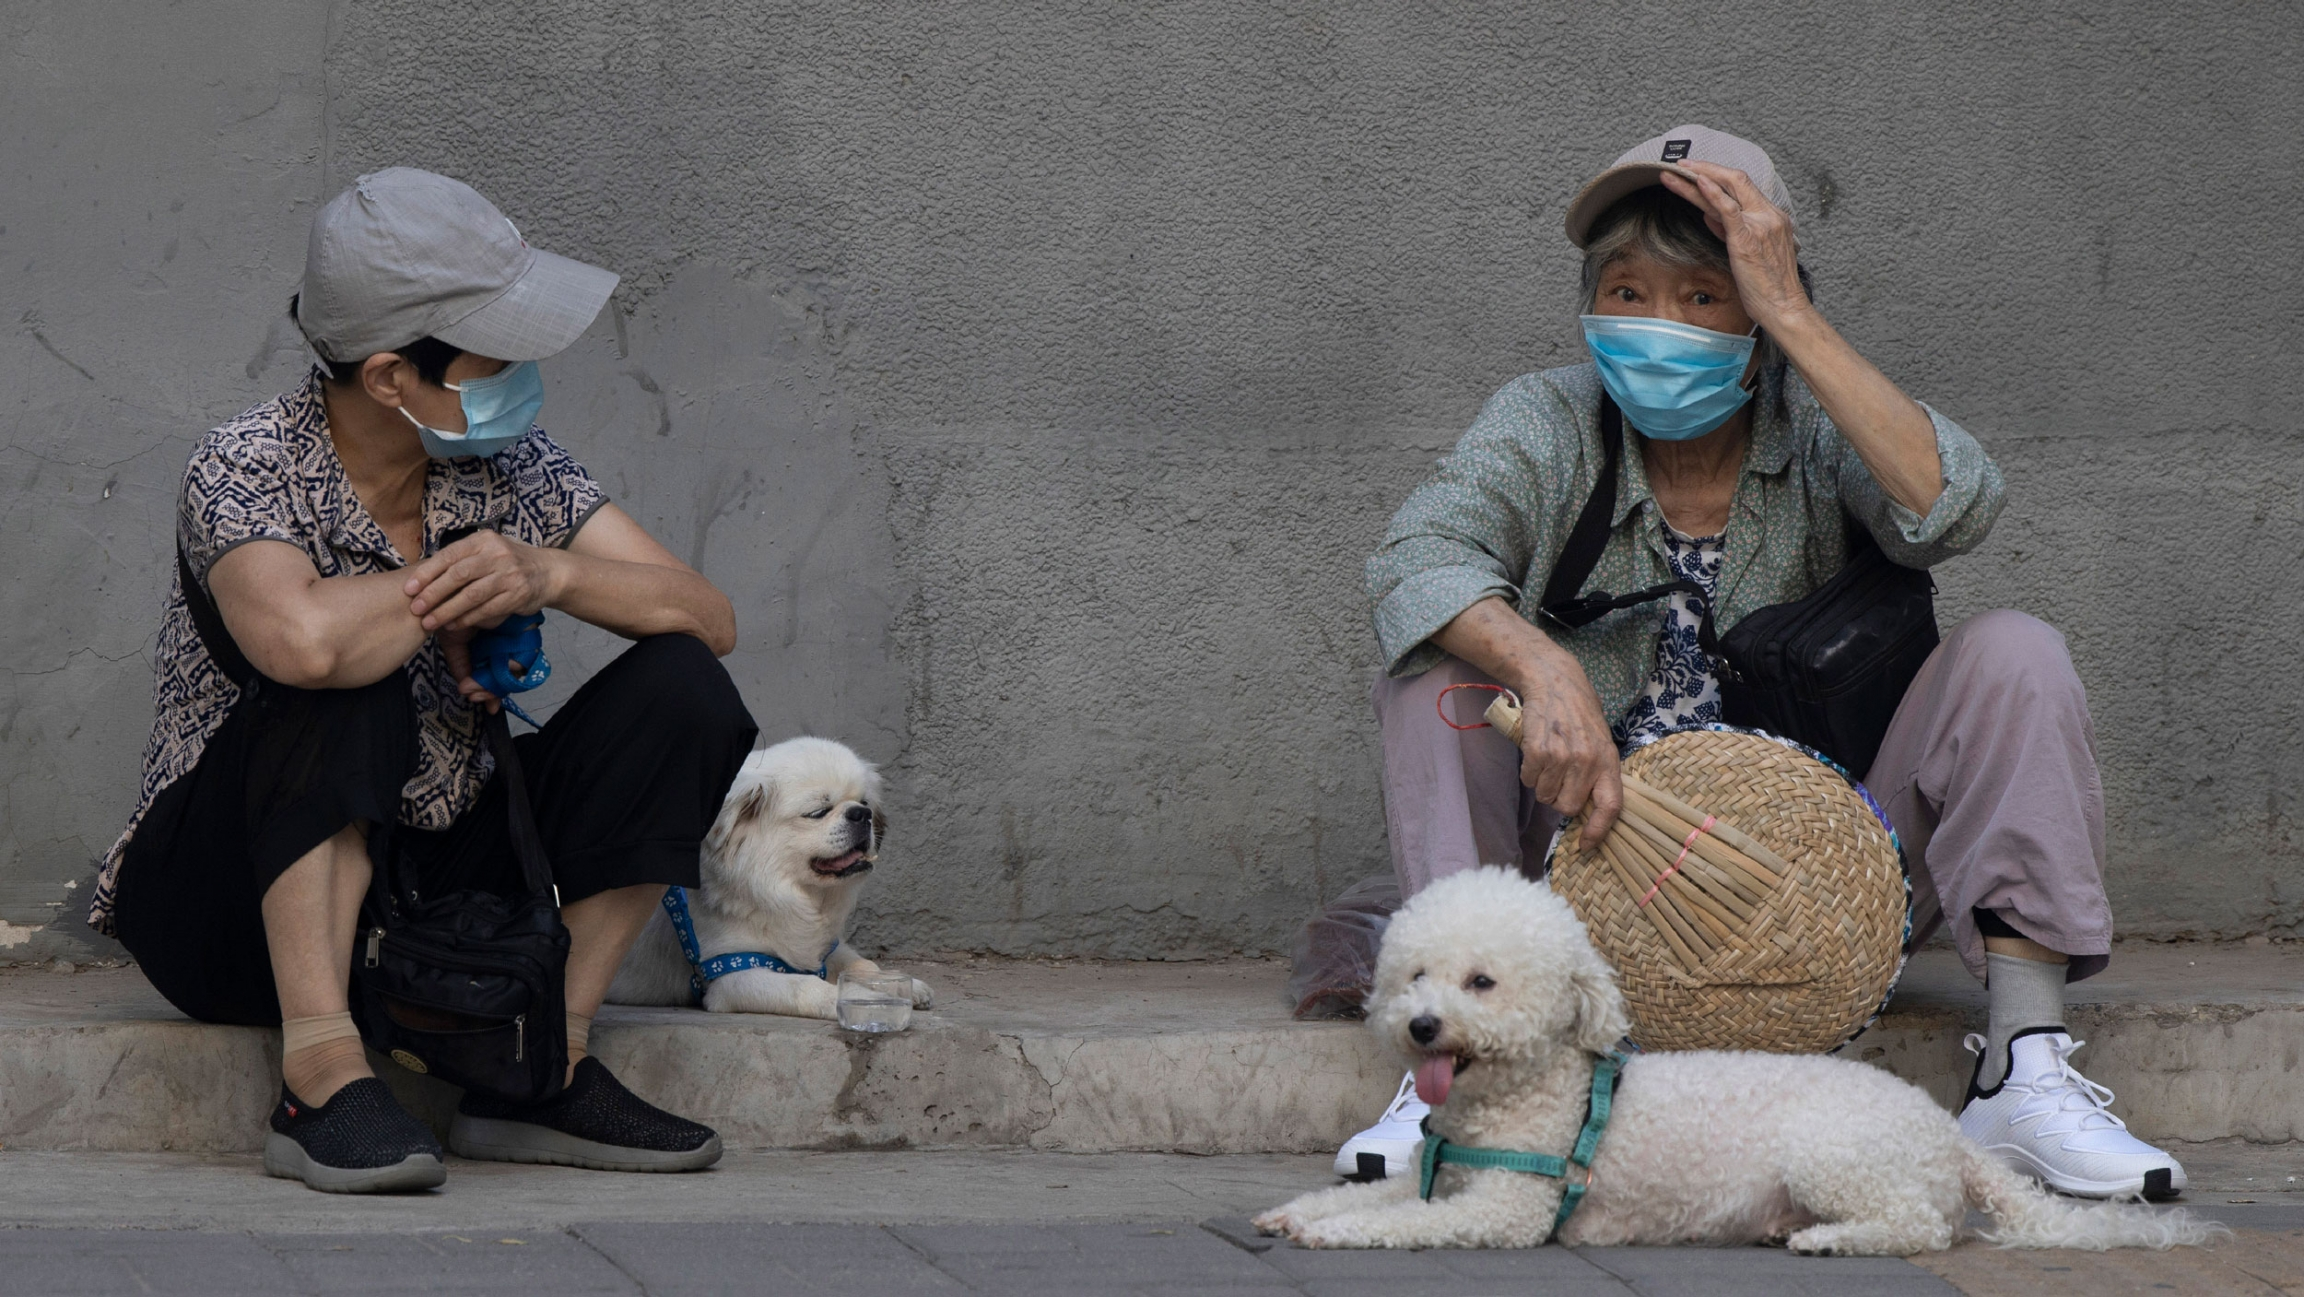 Two women are shown sitting on a small curb and wearing hats and protective facemasks with two small white dogs also sitting nearby.